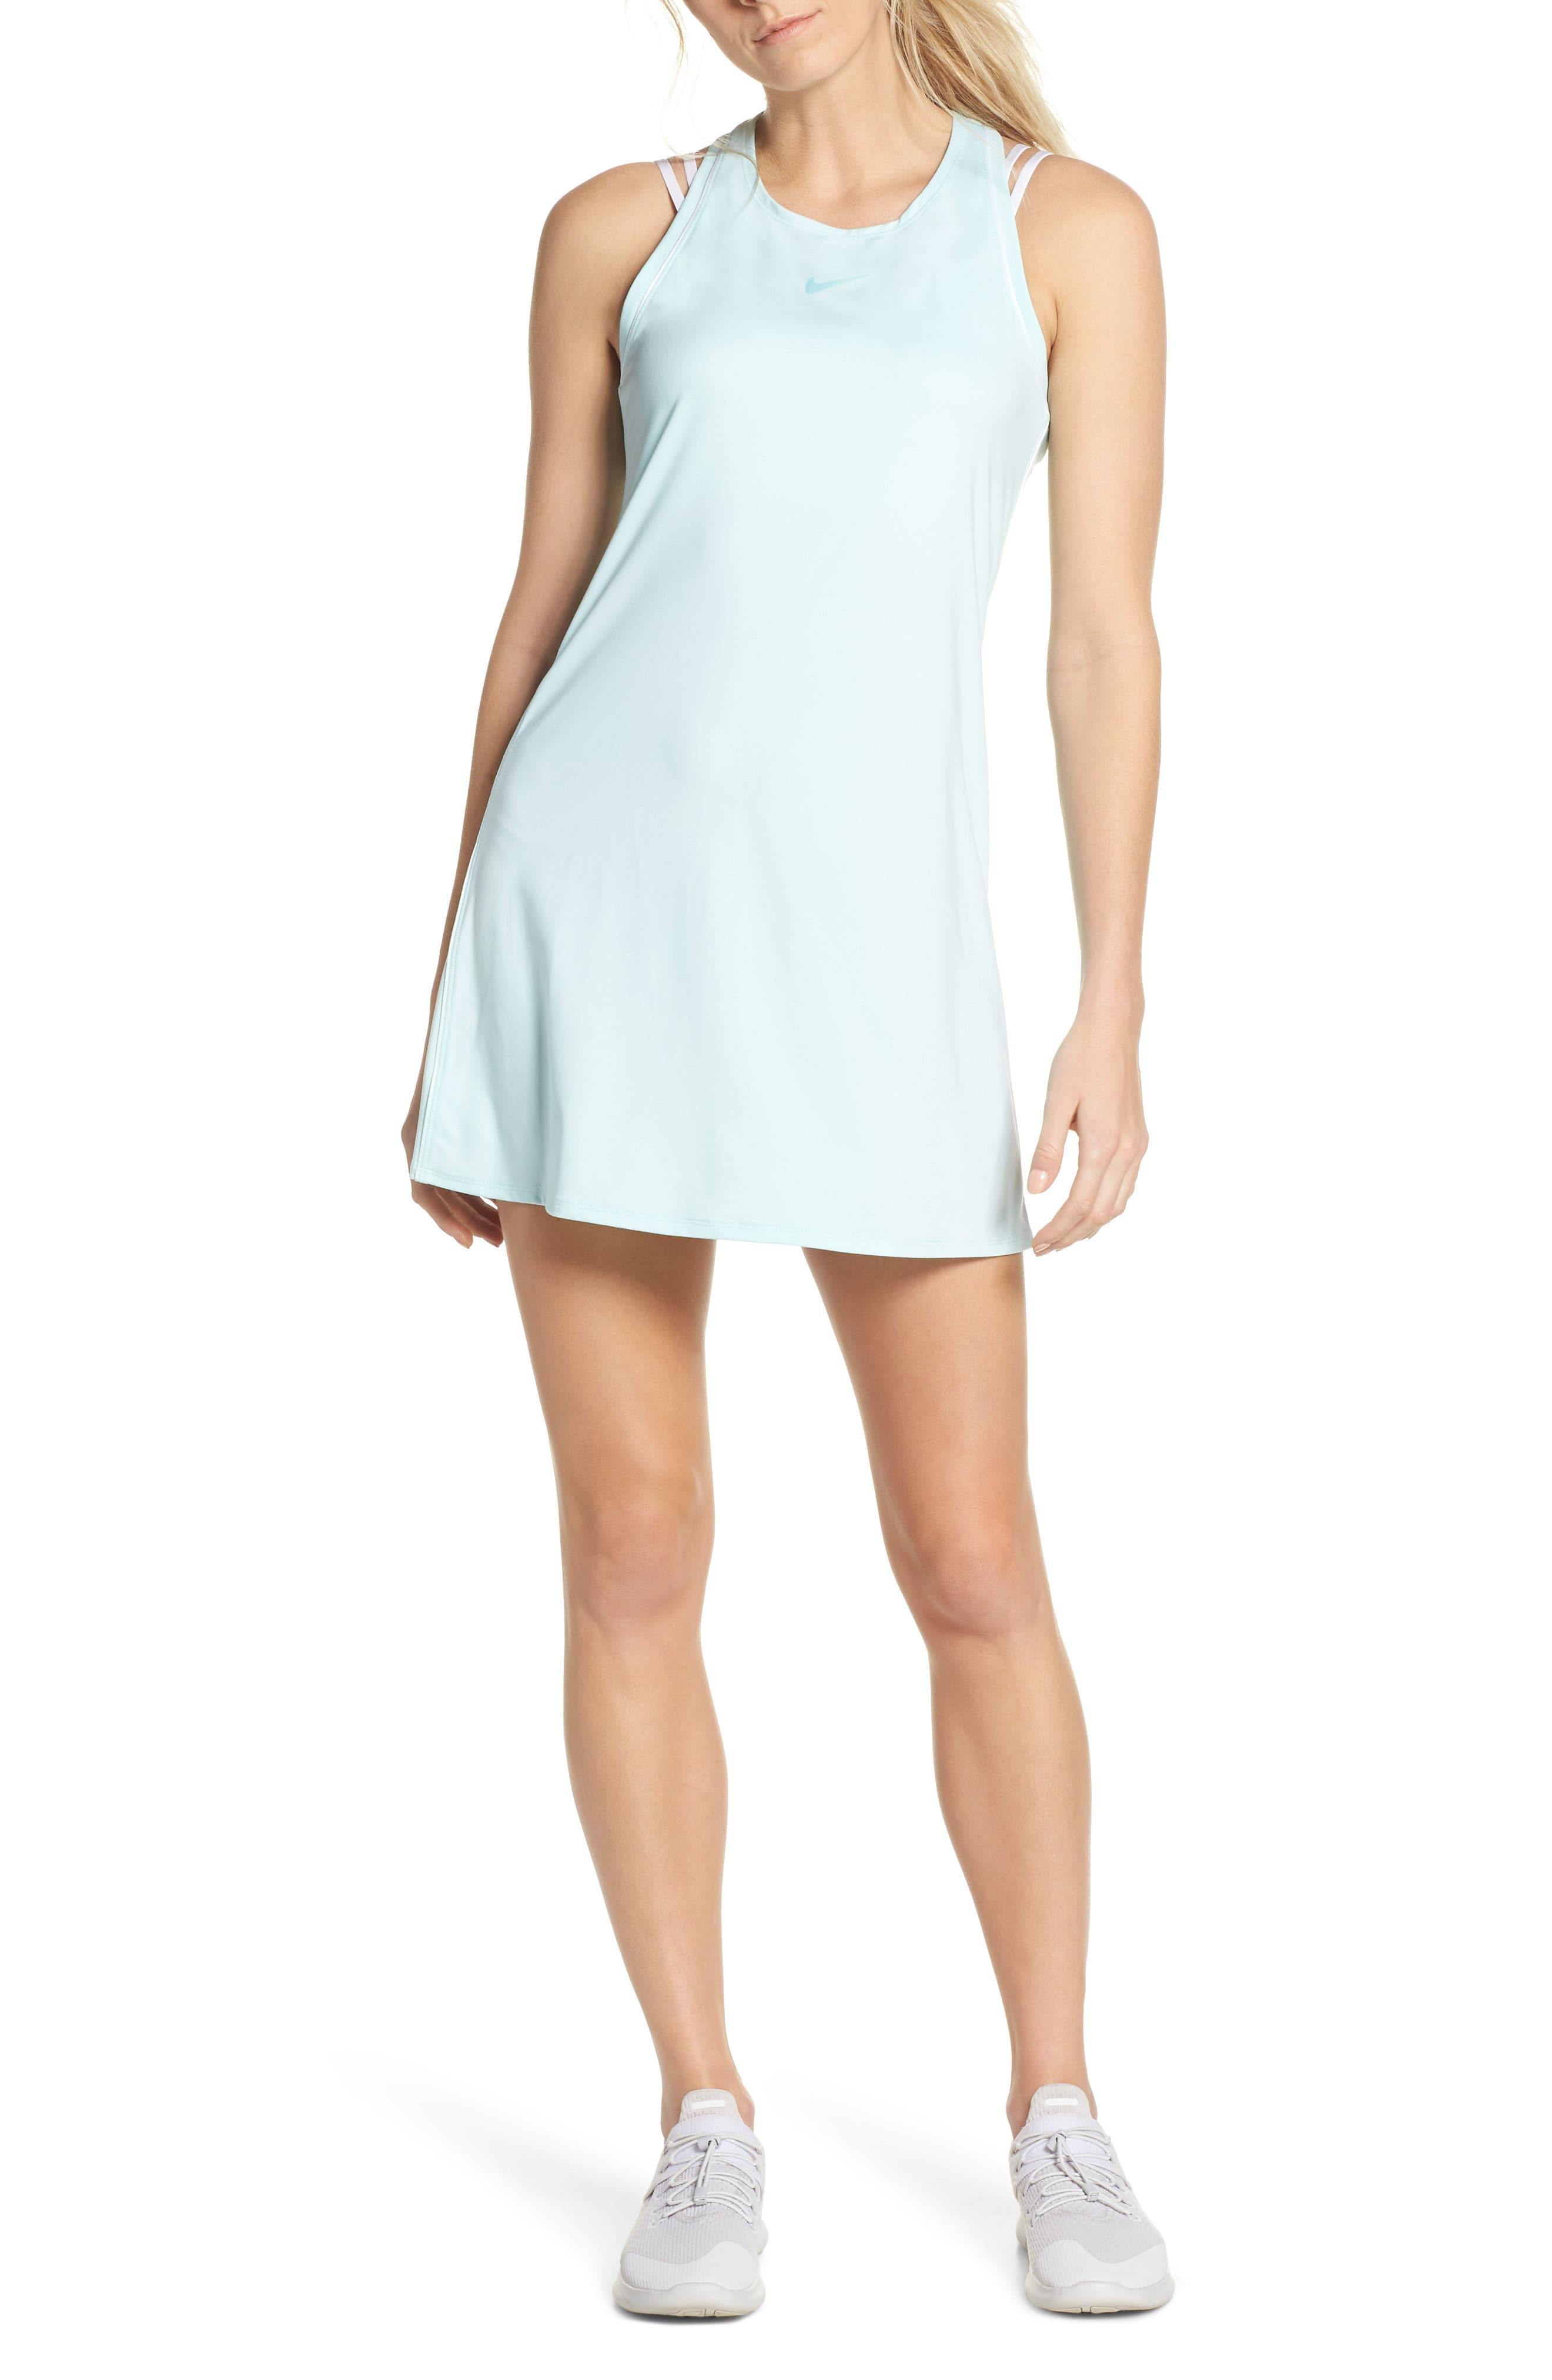 Nike Court Dry Tennis Dress